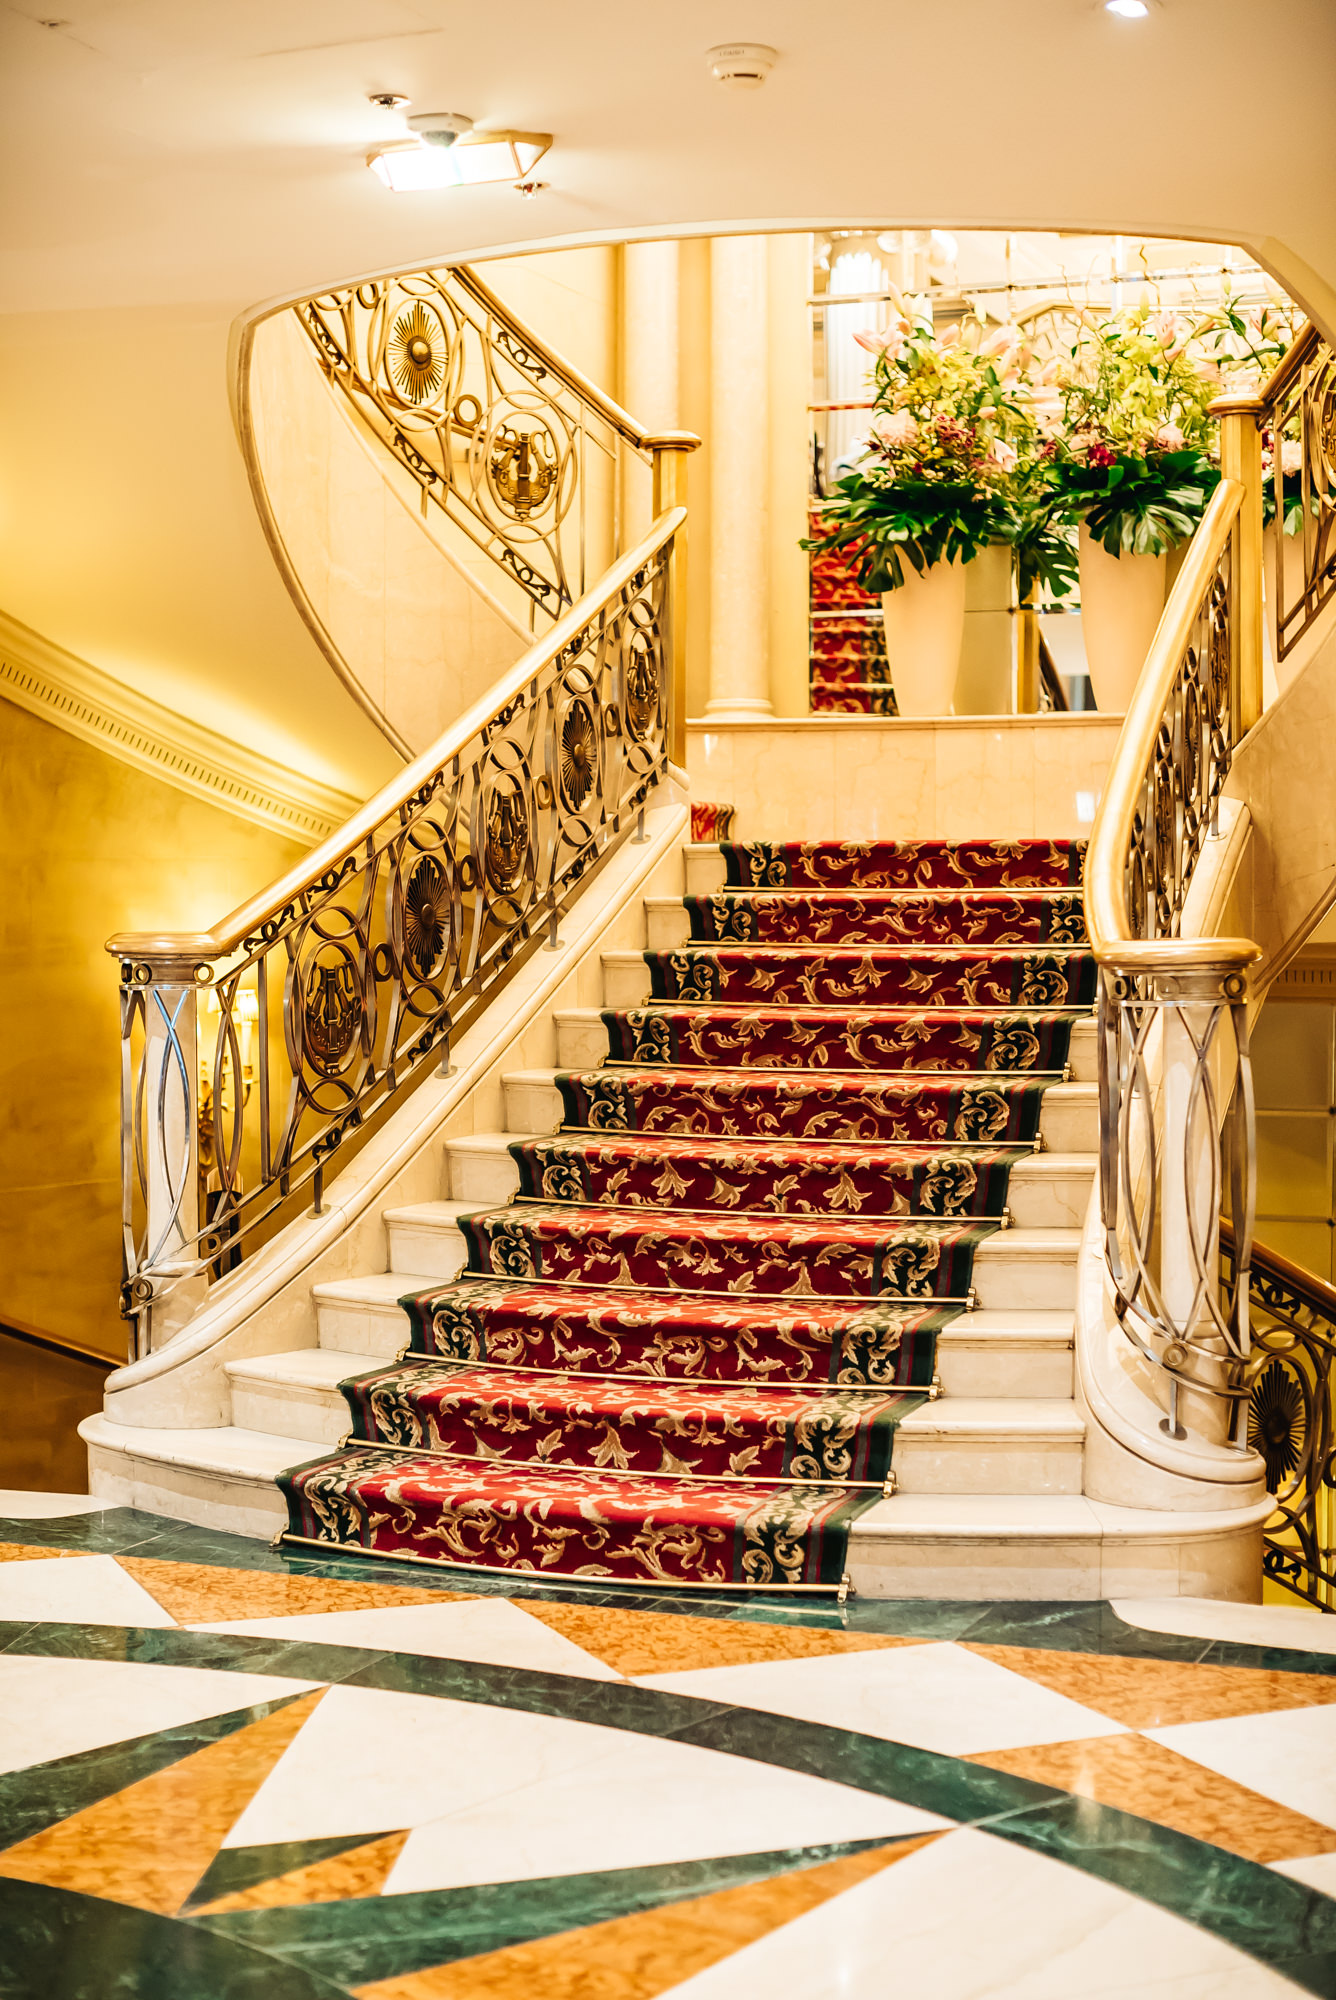 Staircase leading up to restaurant